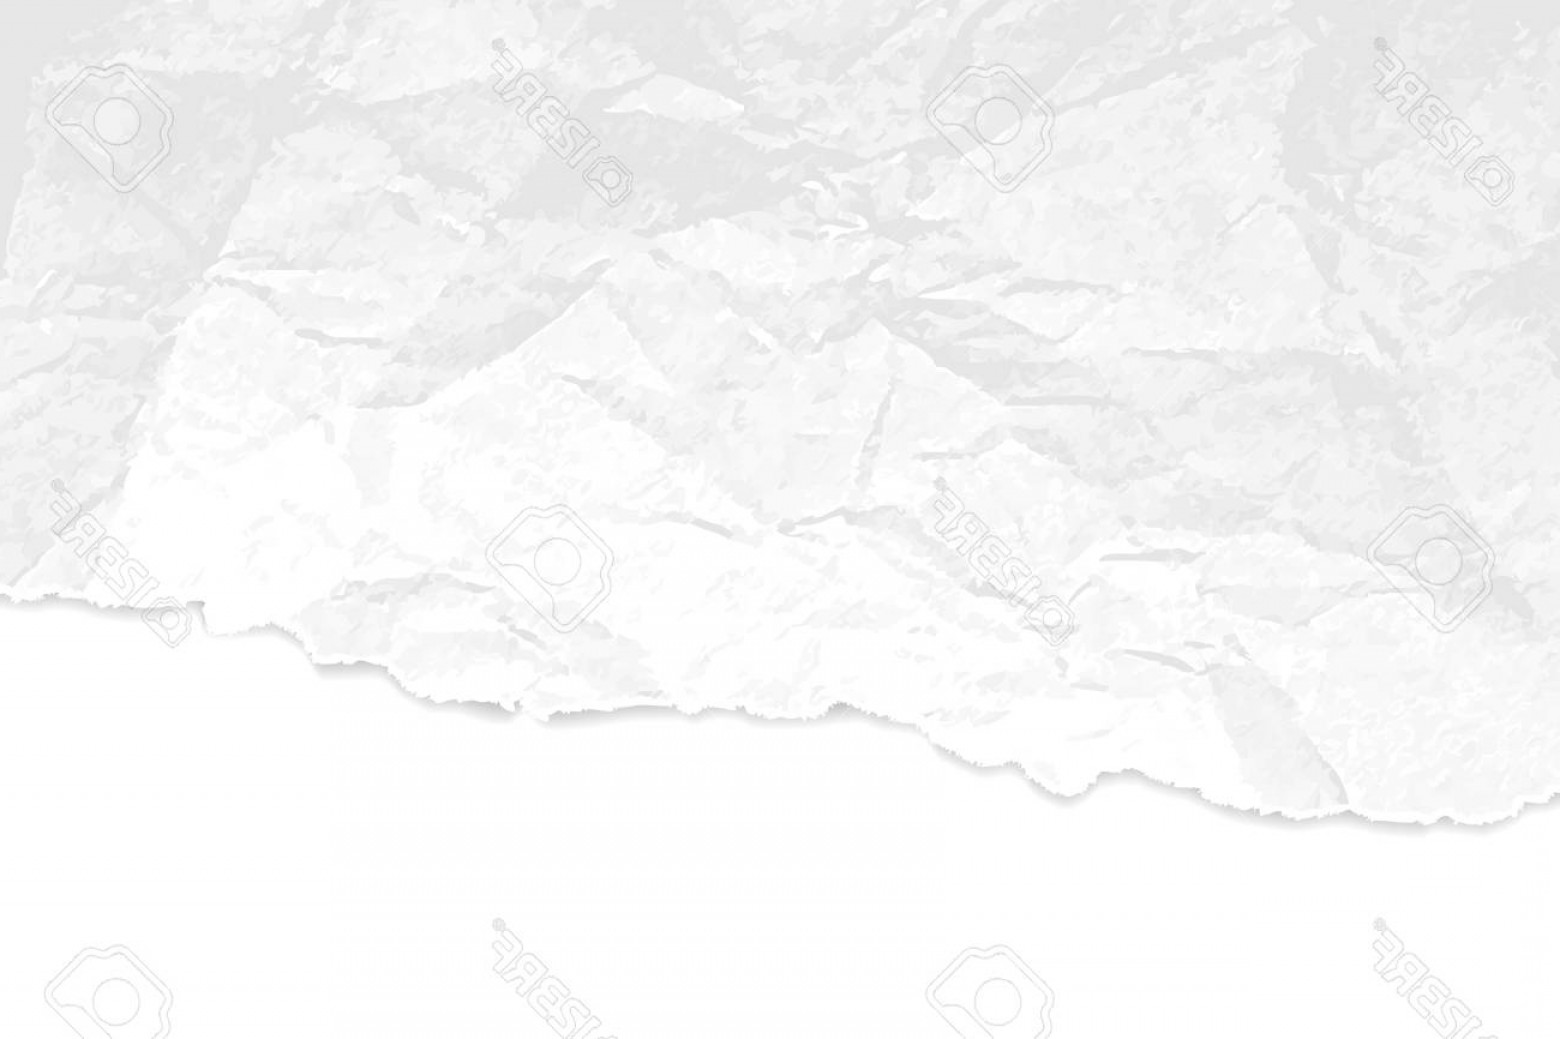 Crinkled Paper Vector: Photostock Vector Crumpled Paper Texture With Torn Edges Abstract White Grey Background